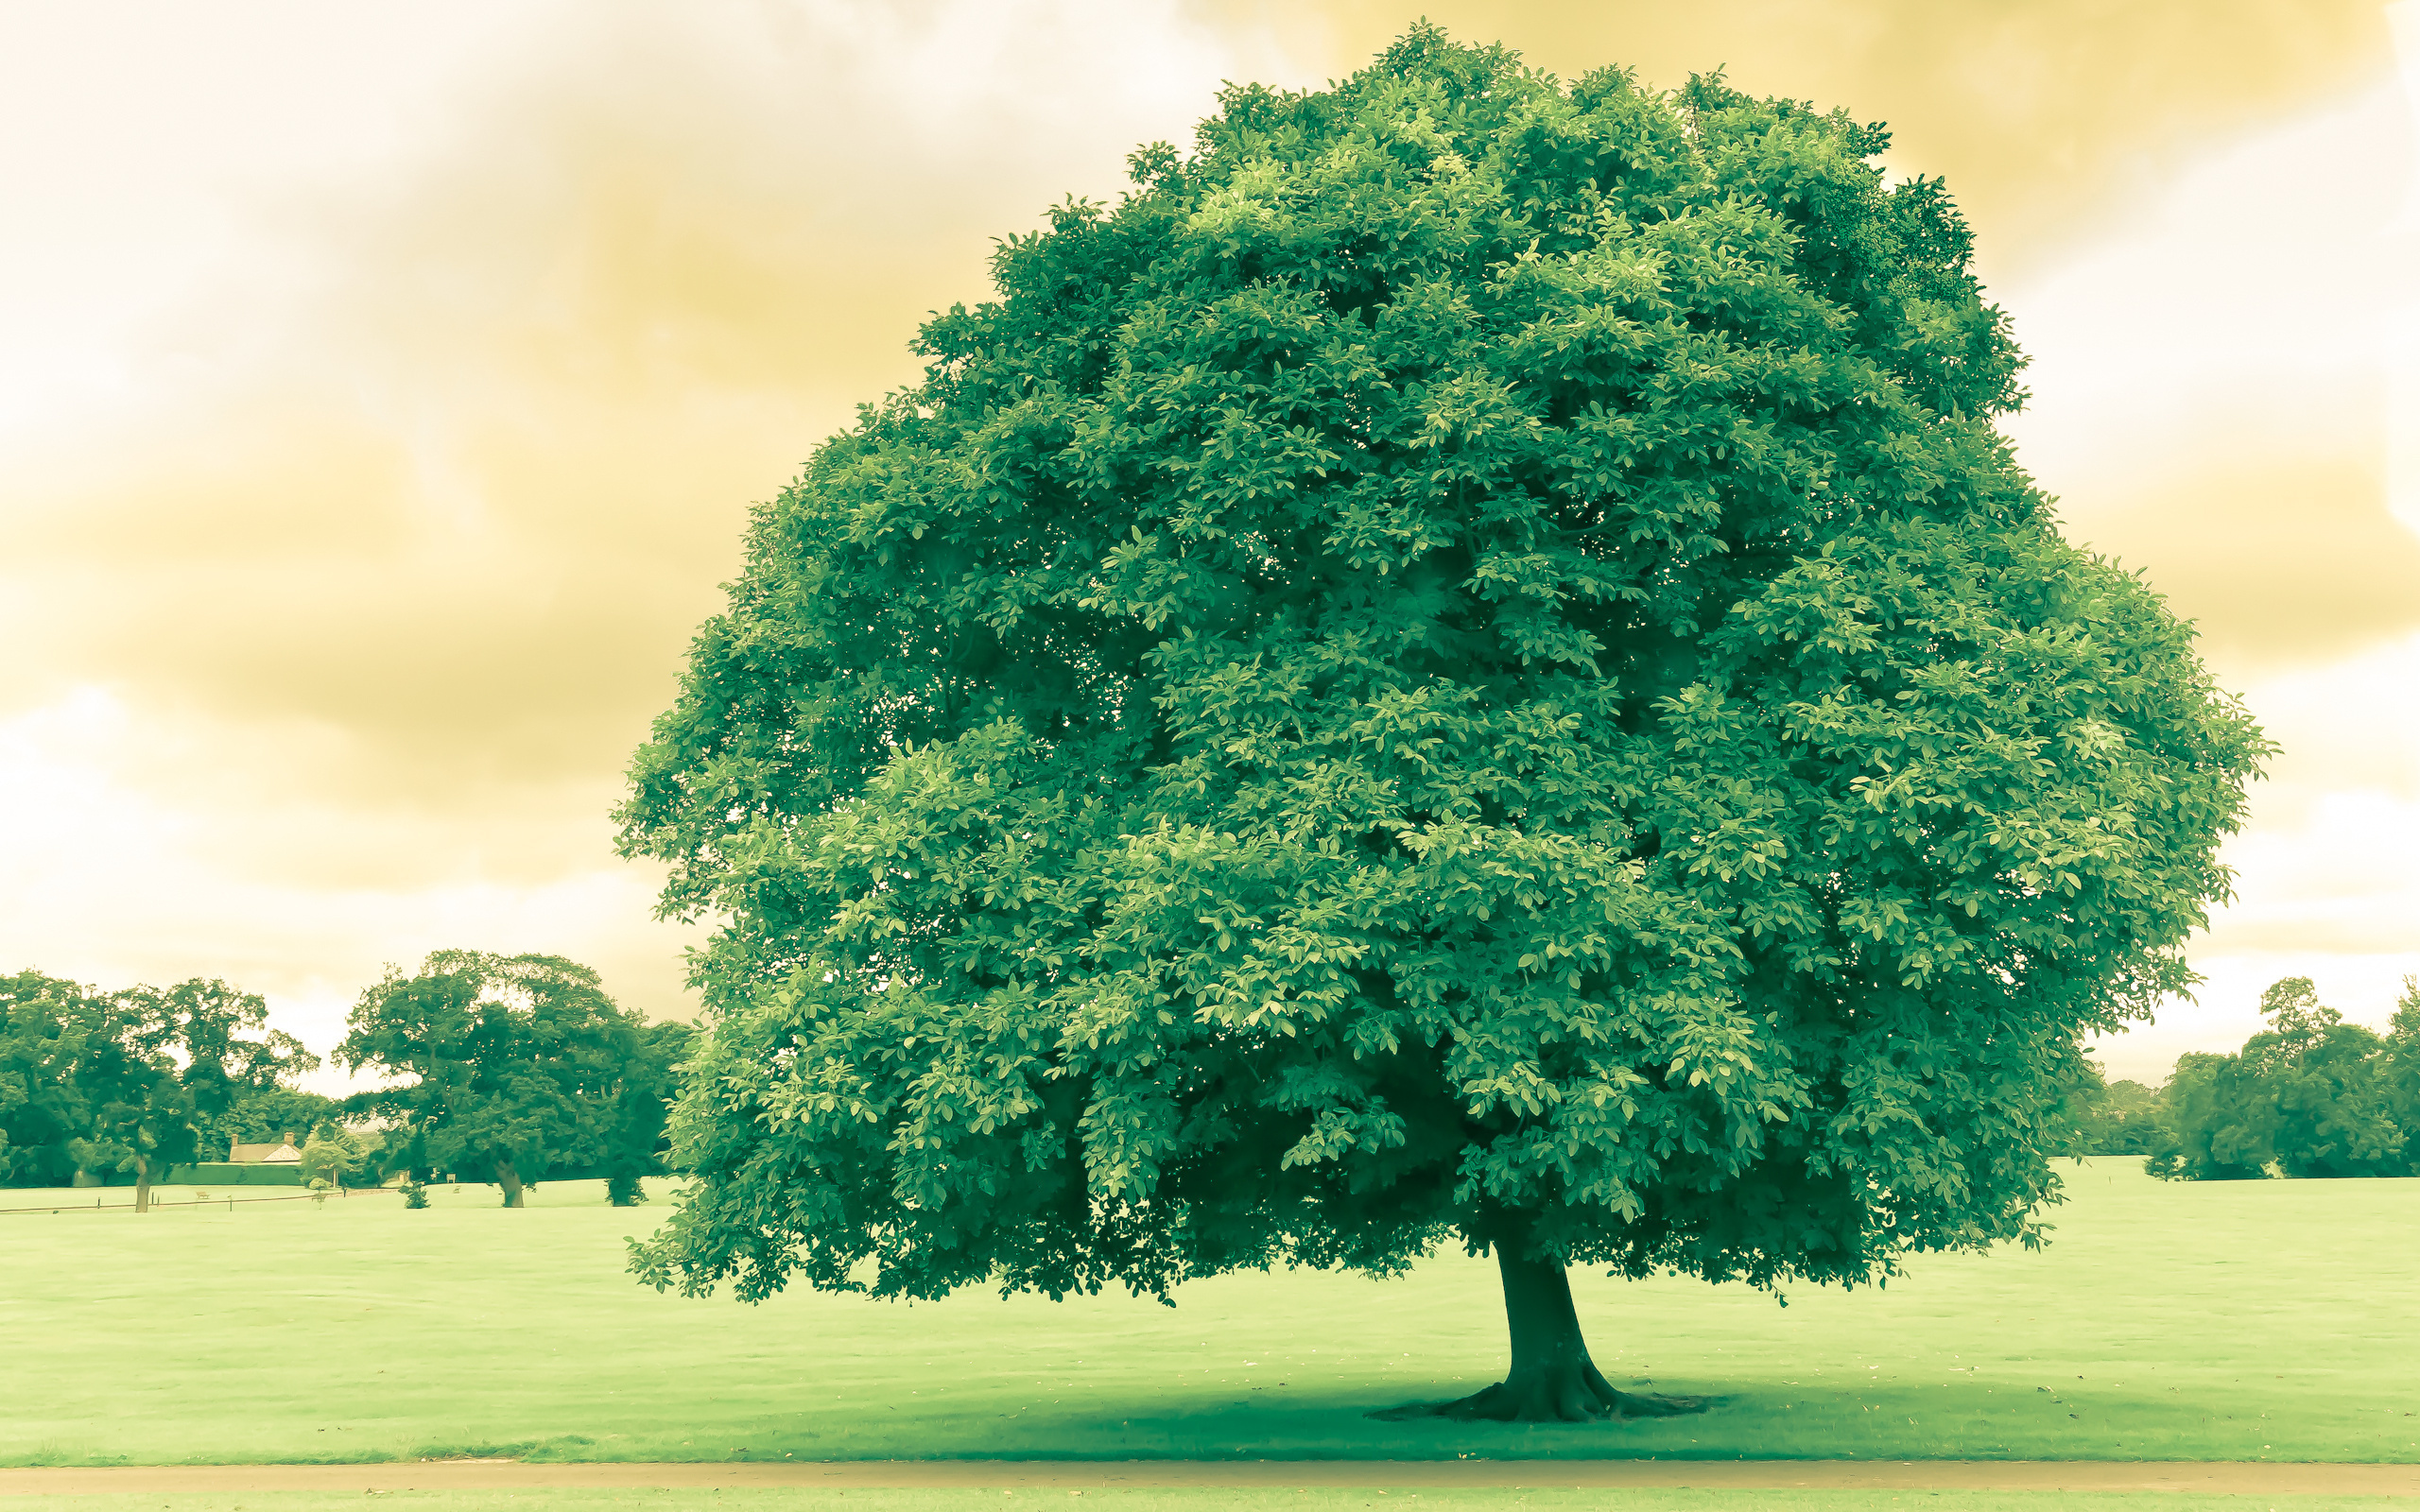 Free high resolution pc desktop background pictures,  753b  50cf, 5199  771f, 80cc  666f, 984c  6750, 7d20  6750 - spreading tree images, tree wallpapers